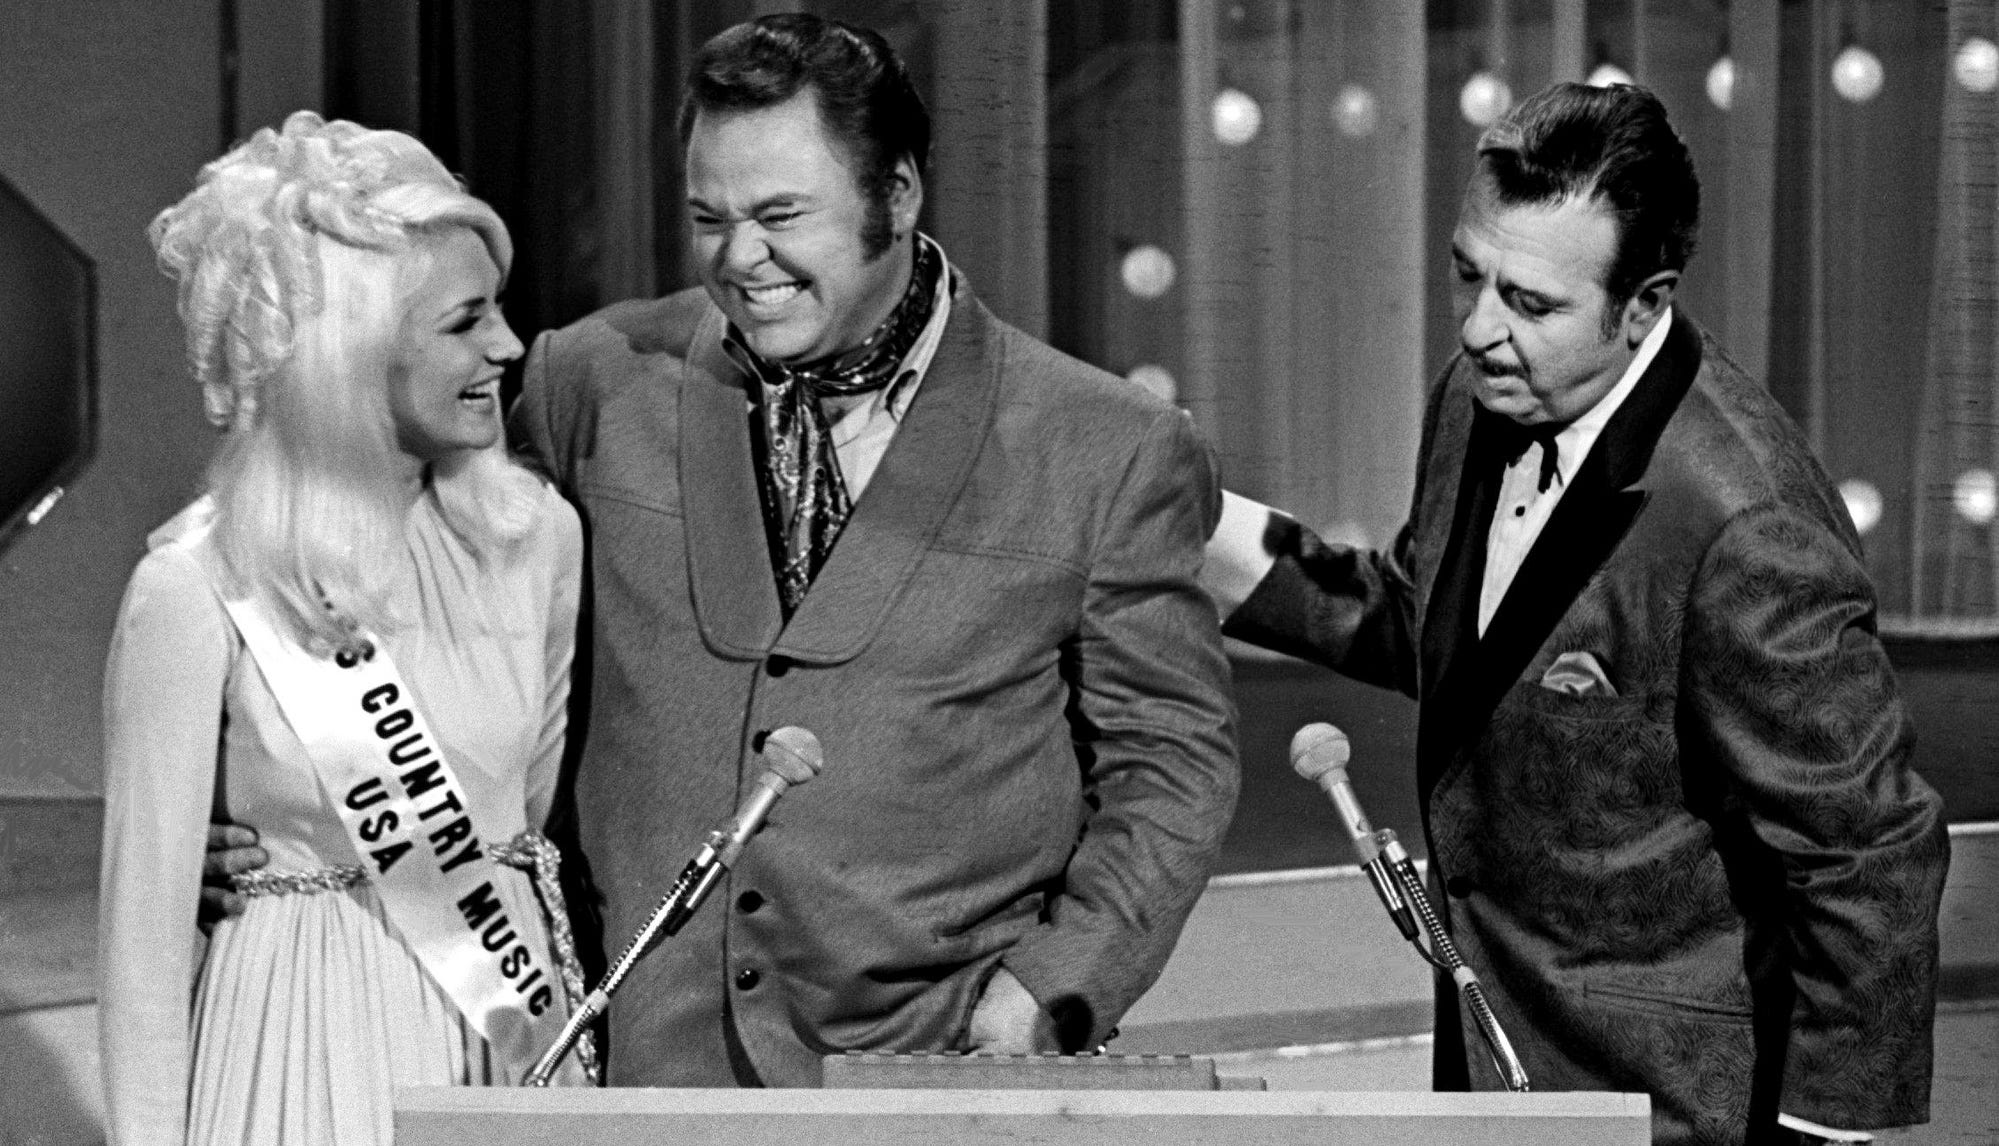 Roy Clark Former Hee Haw Host And Country Music Hall Of Famer